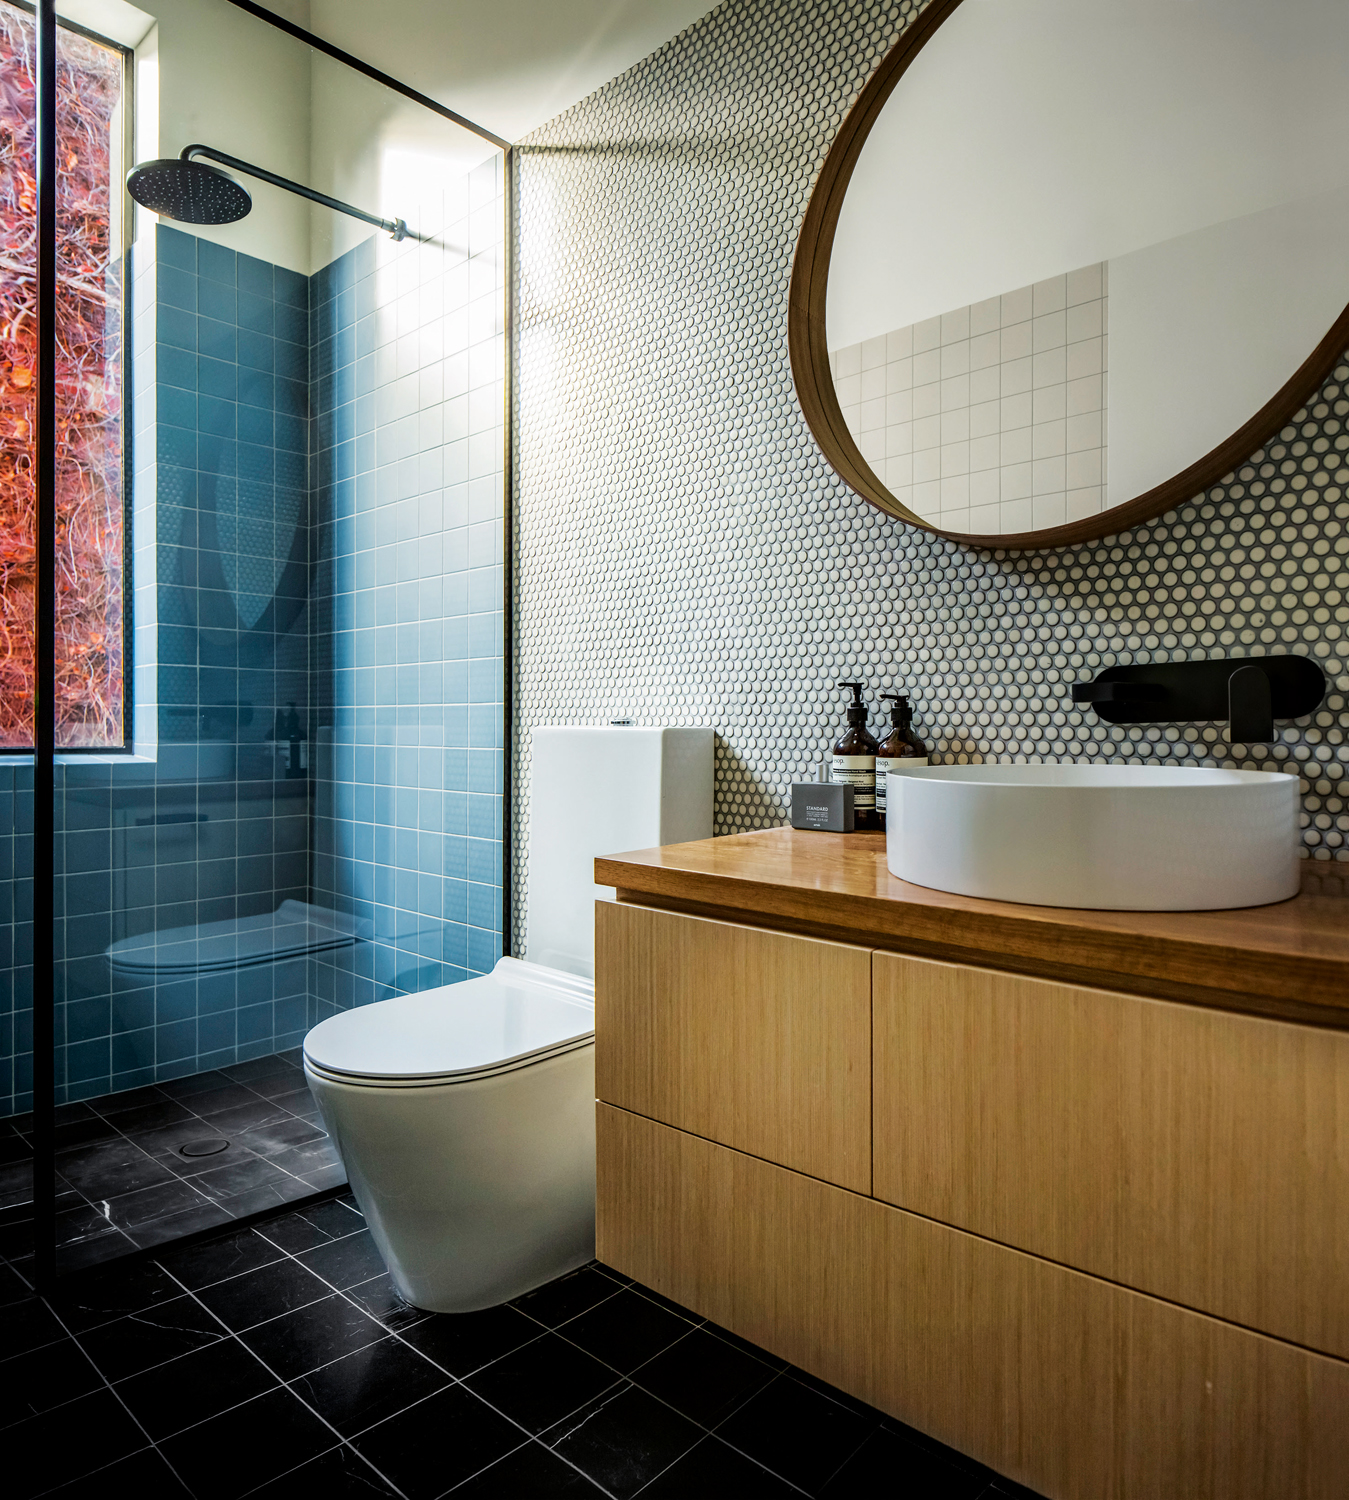 2 stylish bathroom designs with luxurious fixtures